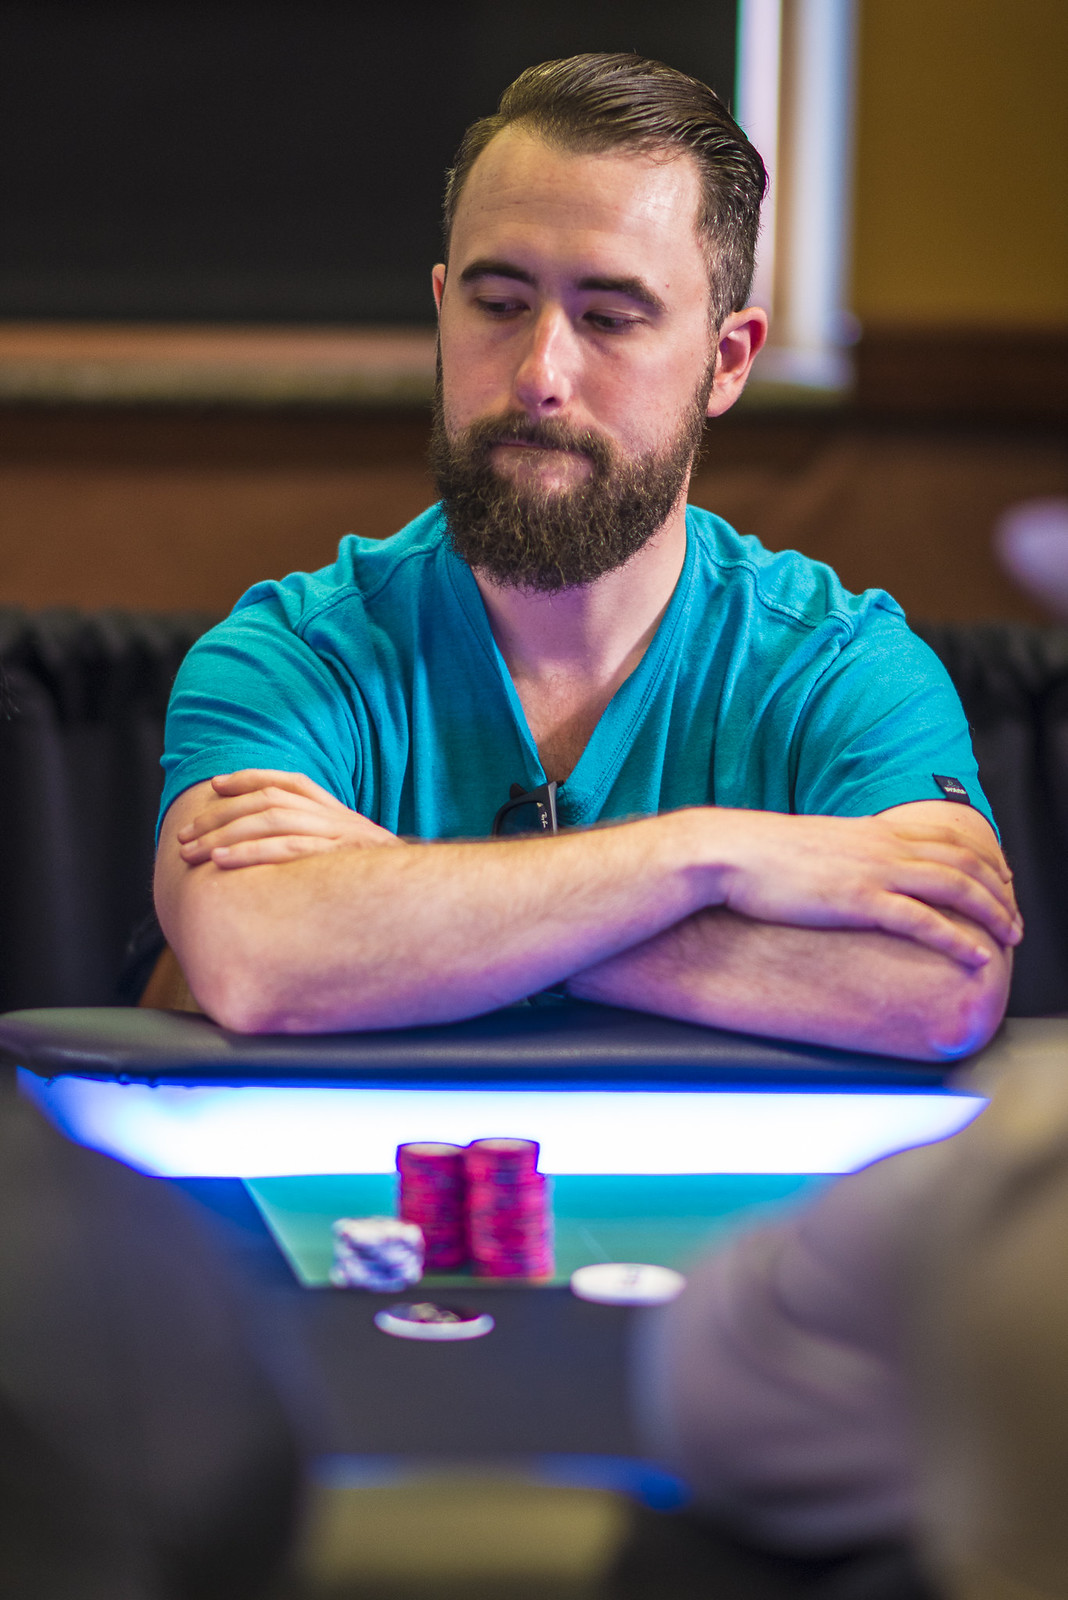 Matt Bond Eliminated in 9th Place